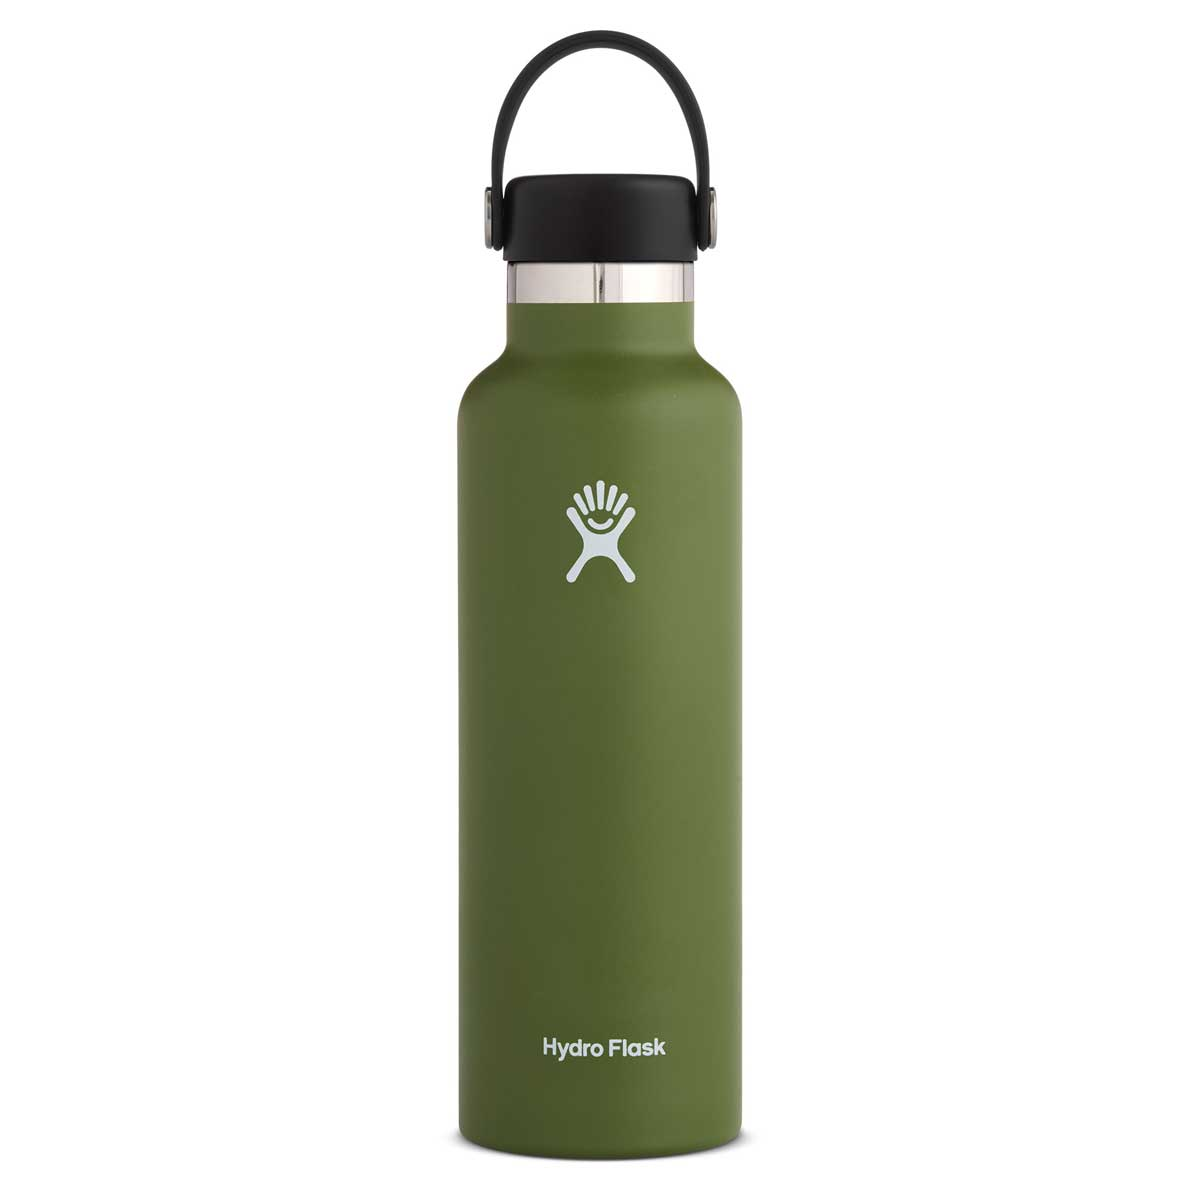 Hydro Flask 21 oz Standard Mouth with Flex Cap in Olive